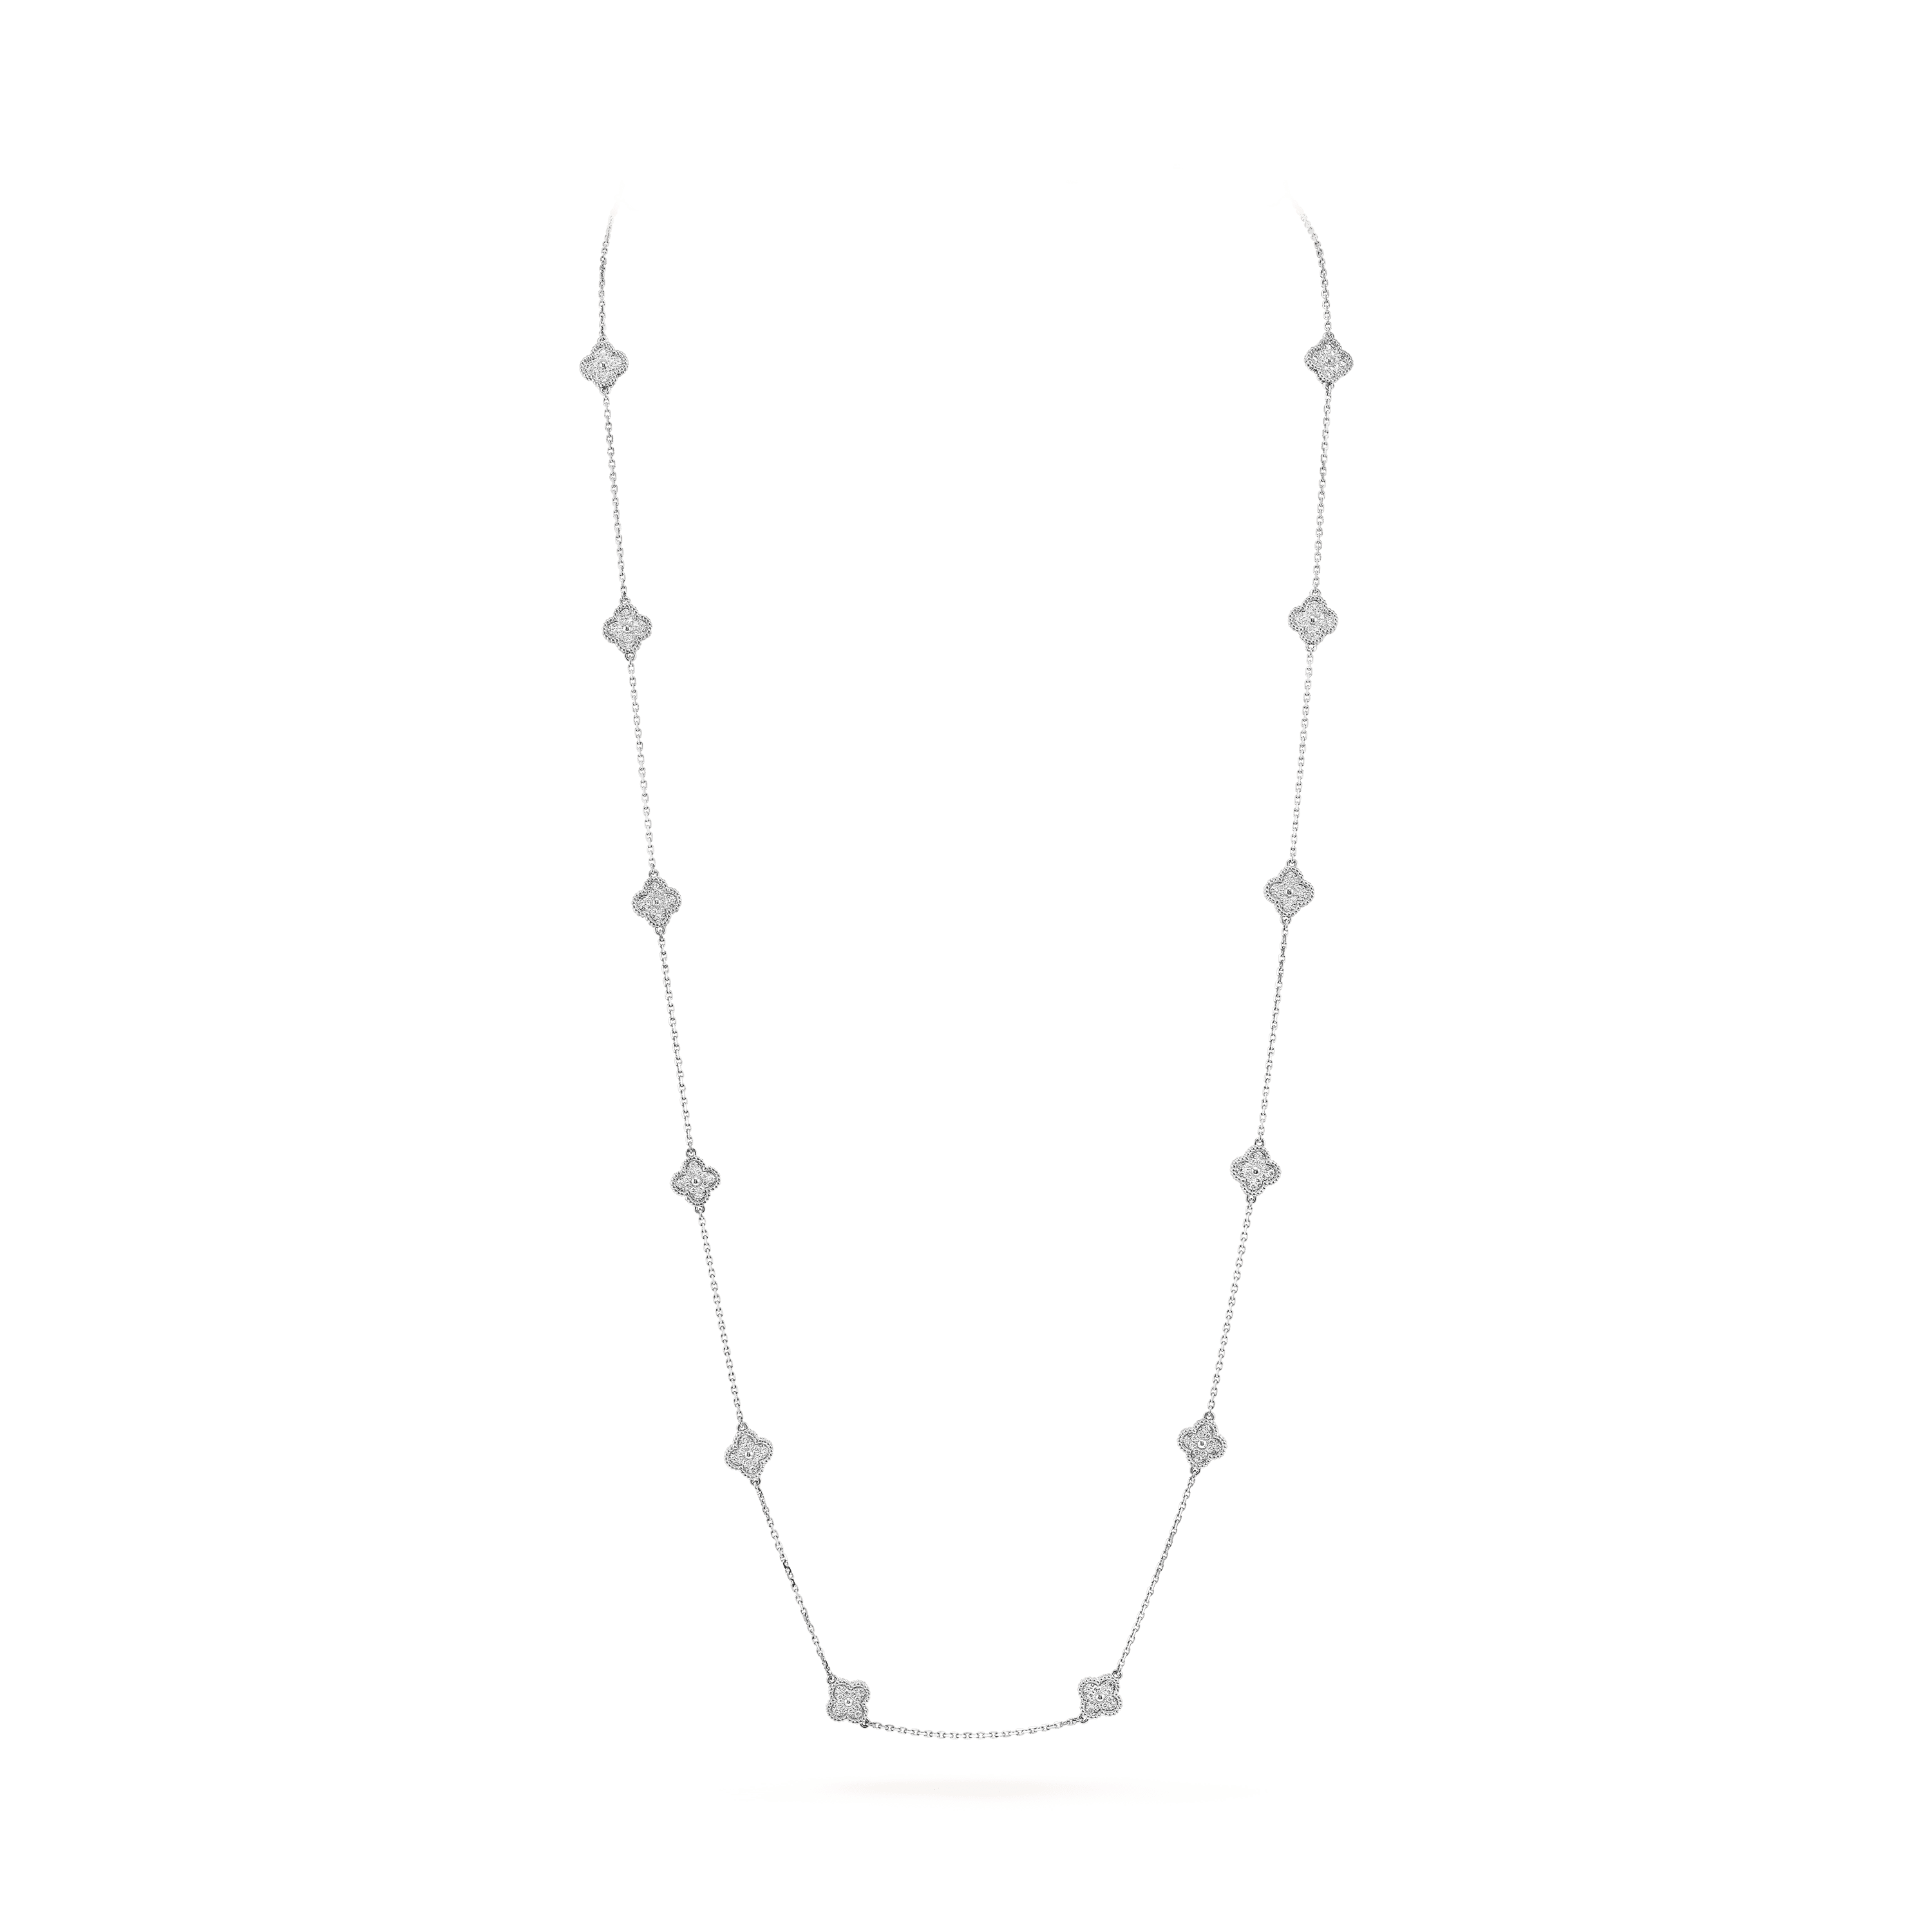 Sweet Alhambra long necklace, 16 motifs, - On Stand View - VCARO85A00 - Van Cleef & Arpels